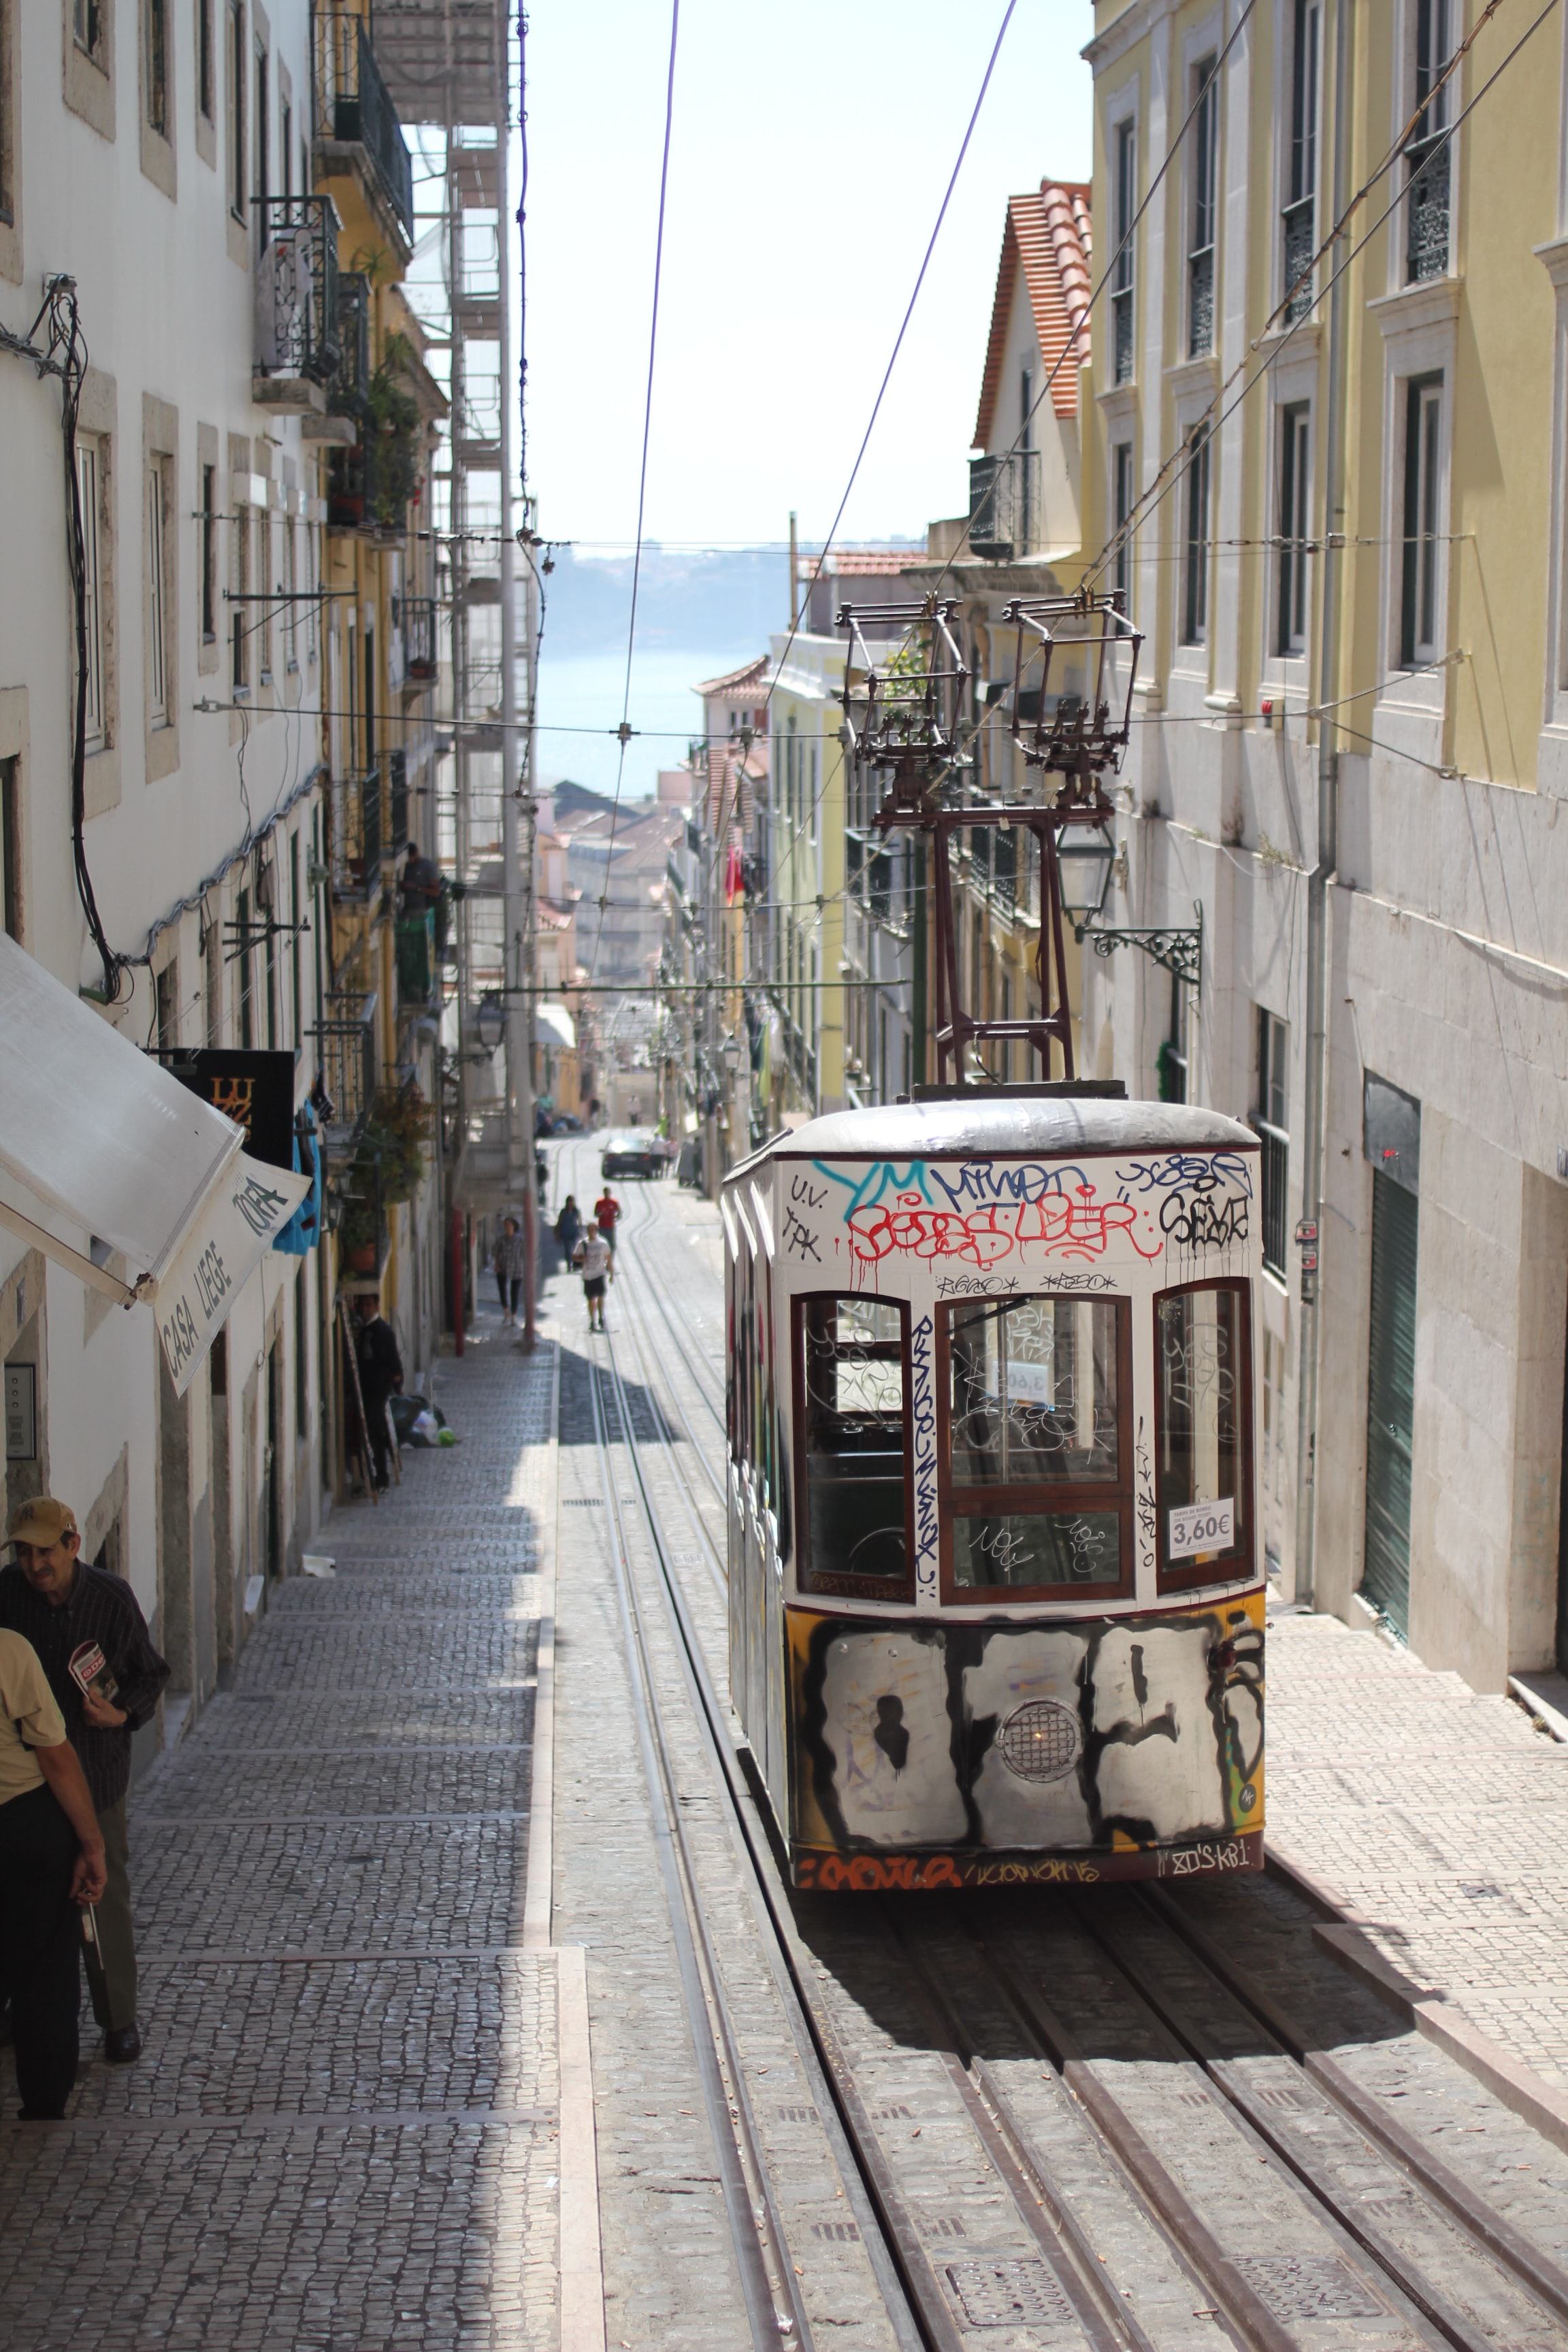 Abandoned street tram filled with graffiti sitting stationary in a Lisbon street as people walk by